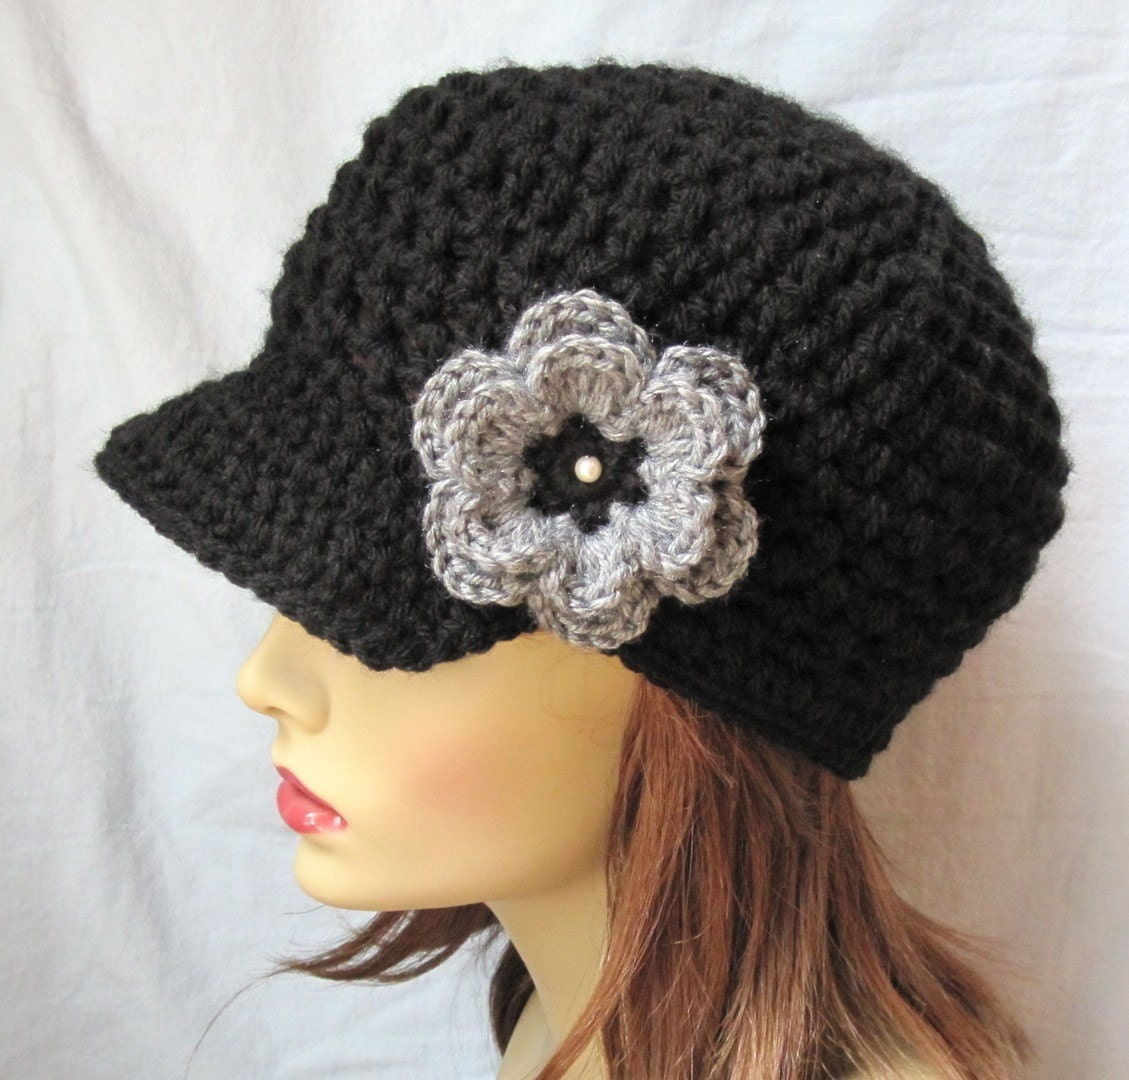 Womens Hat, Medium - Large Teen / Adult Newsboy, Black, Gray, Pearl, Removable Flower Pin Brooch, Jewelry, Wedding Gifts, Birthday Gifts, Photo Prop, Handmade by jadeexpressions on Etsy- JE148NML